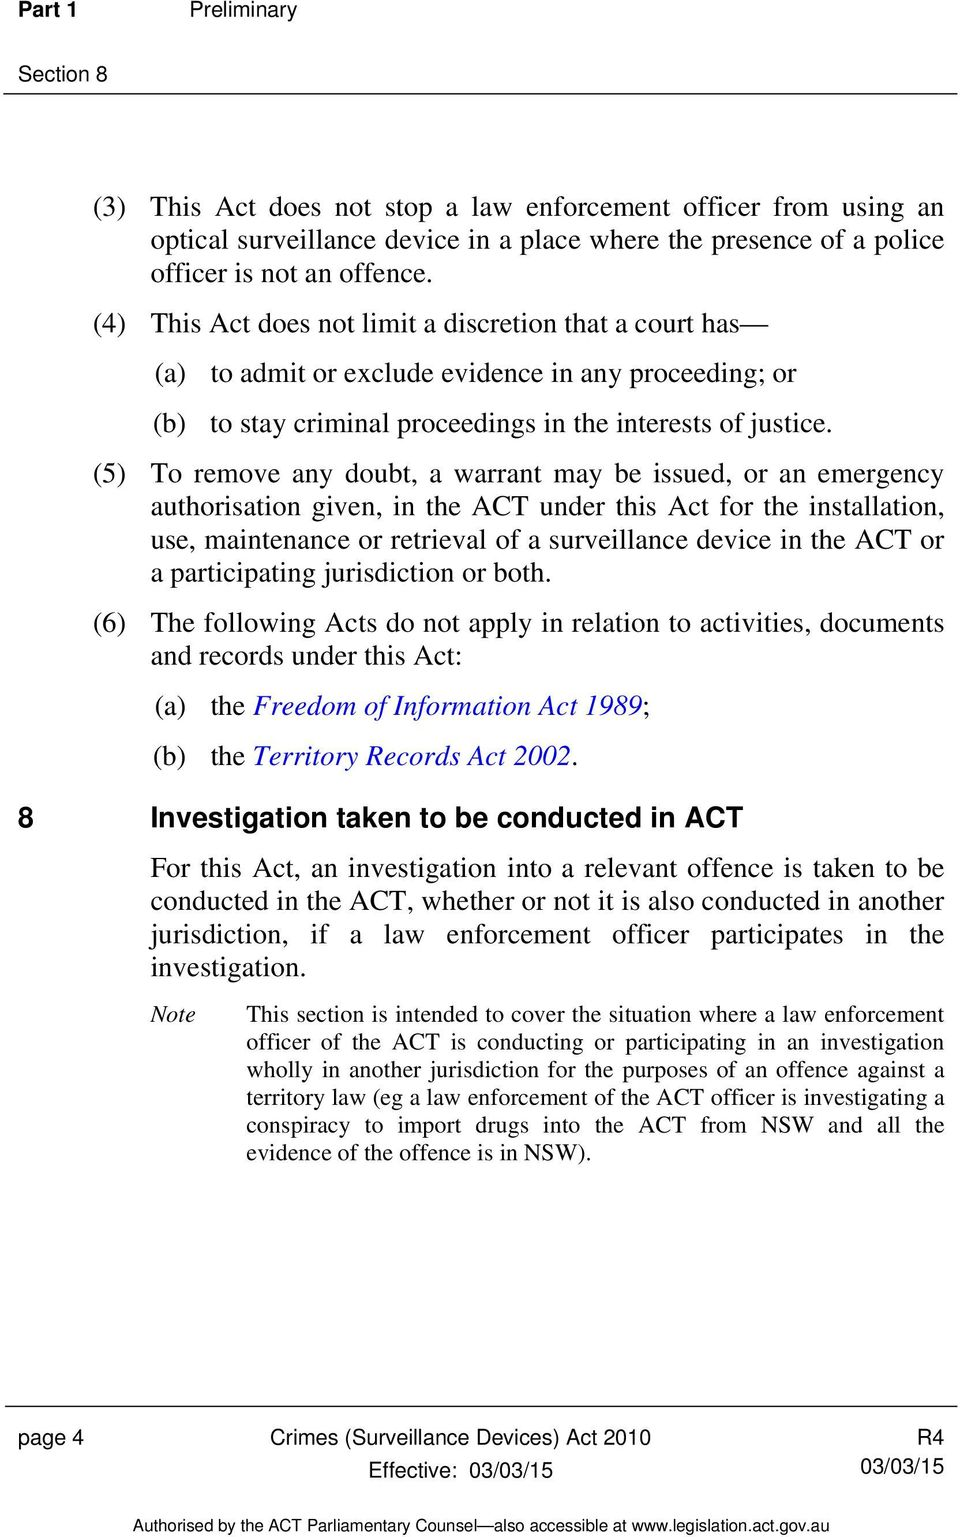 (5) To remove any doubt, a warrant may be issued, or an emergency authorisation given, in the ACT under this Act for the installation, use, maintenance or retrieval of a surveillance device in the